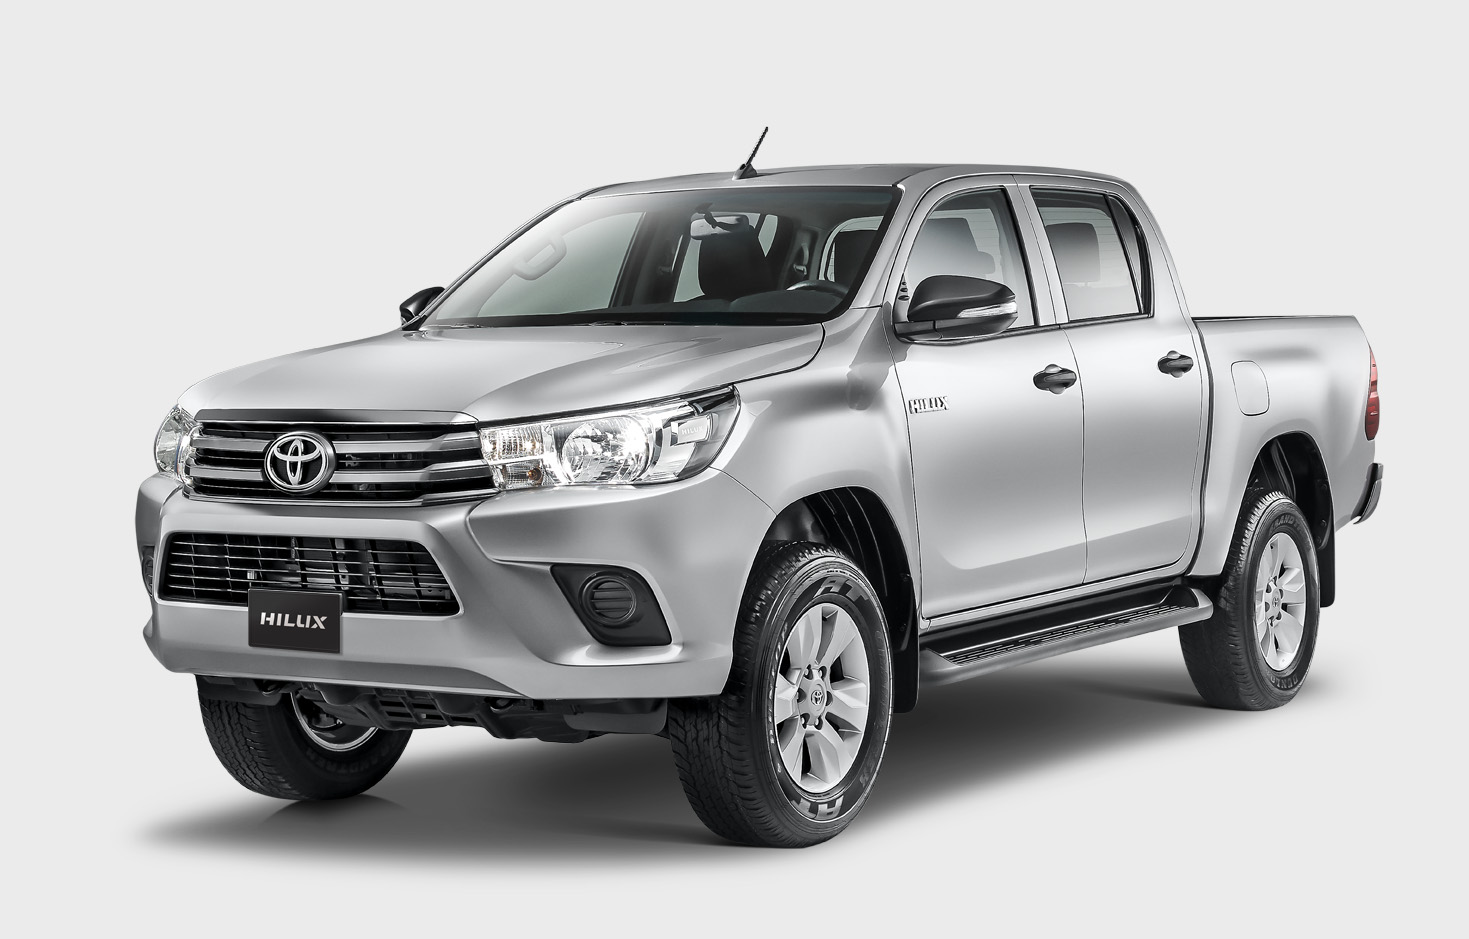 toyota hilux di sel 2018 llega a m xico precios y versiones autos actual m xico. Black Bedroom Furniture Sets. Home Design Ideas